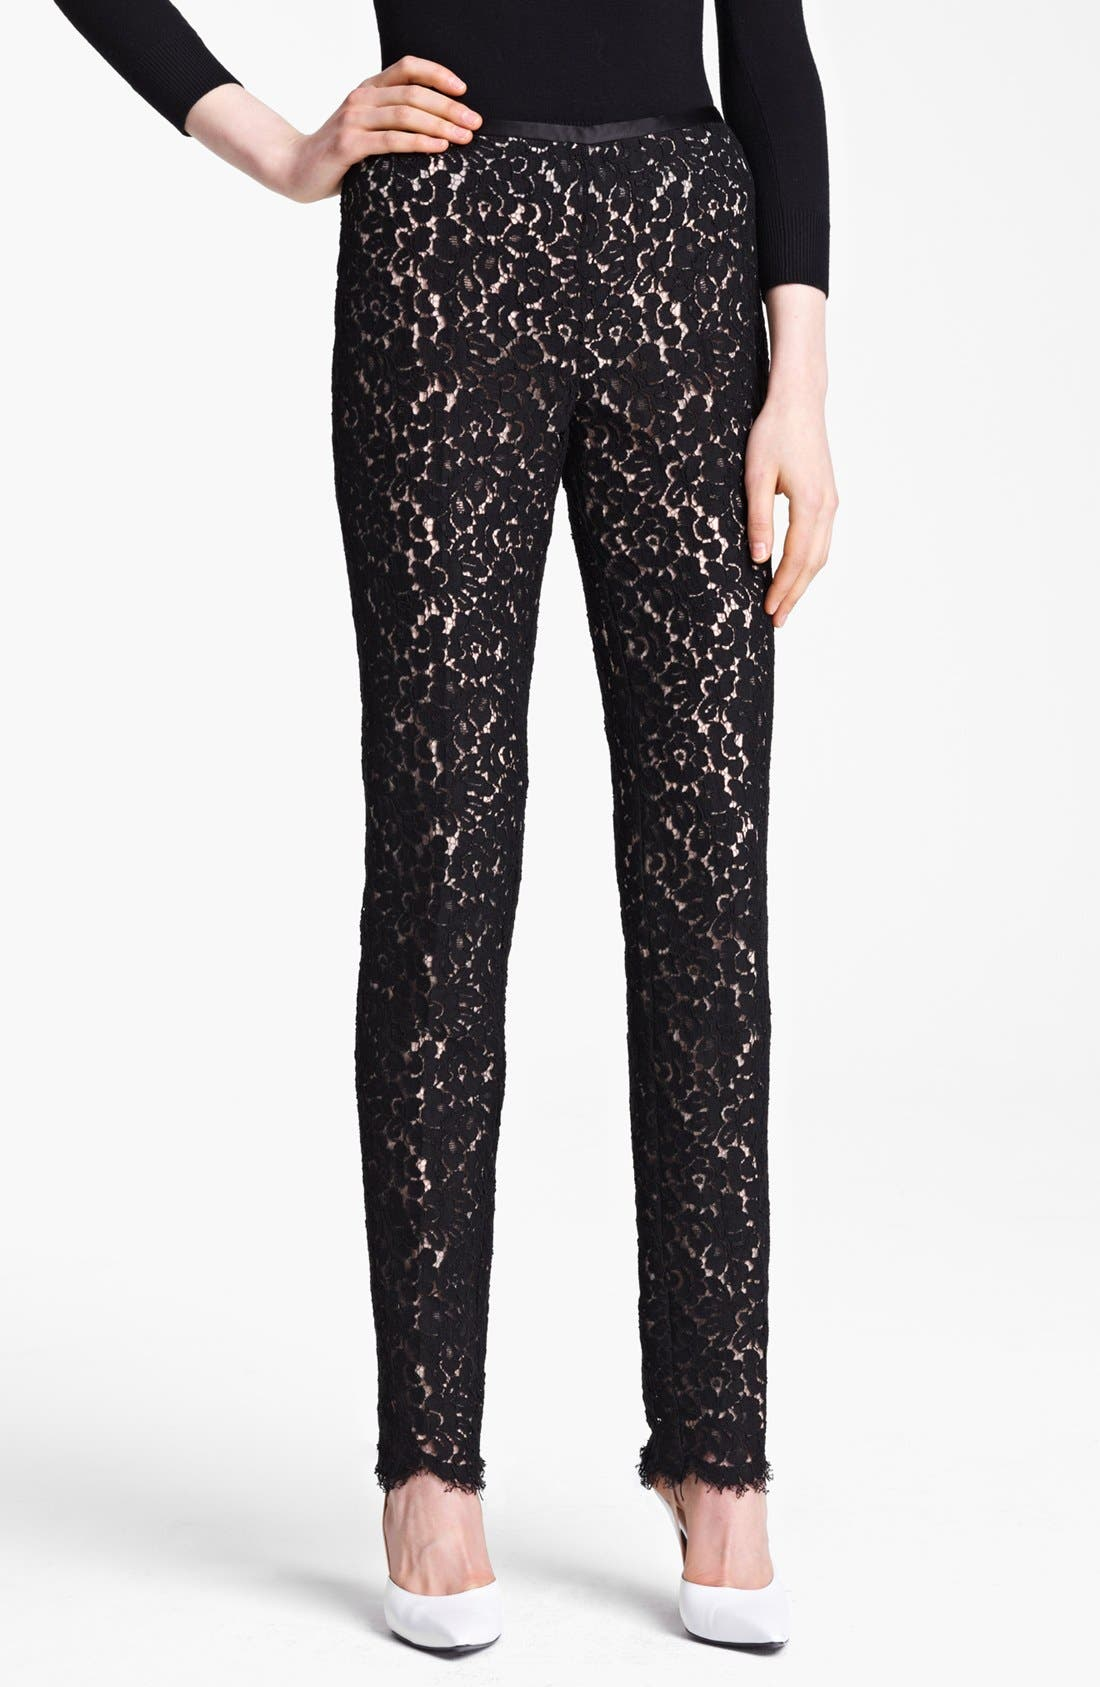 Alternate Image 1 Selected - Michael Kors Floral Lace Pants